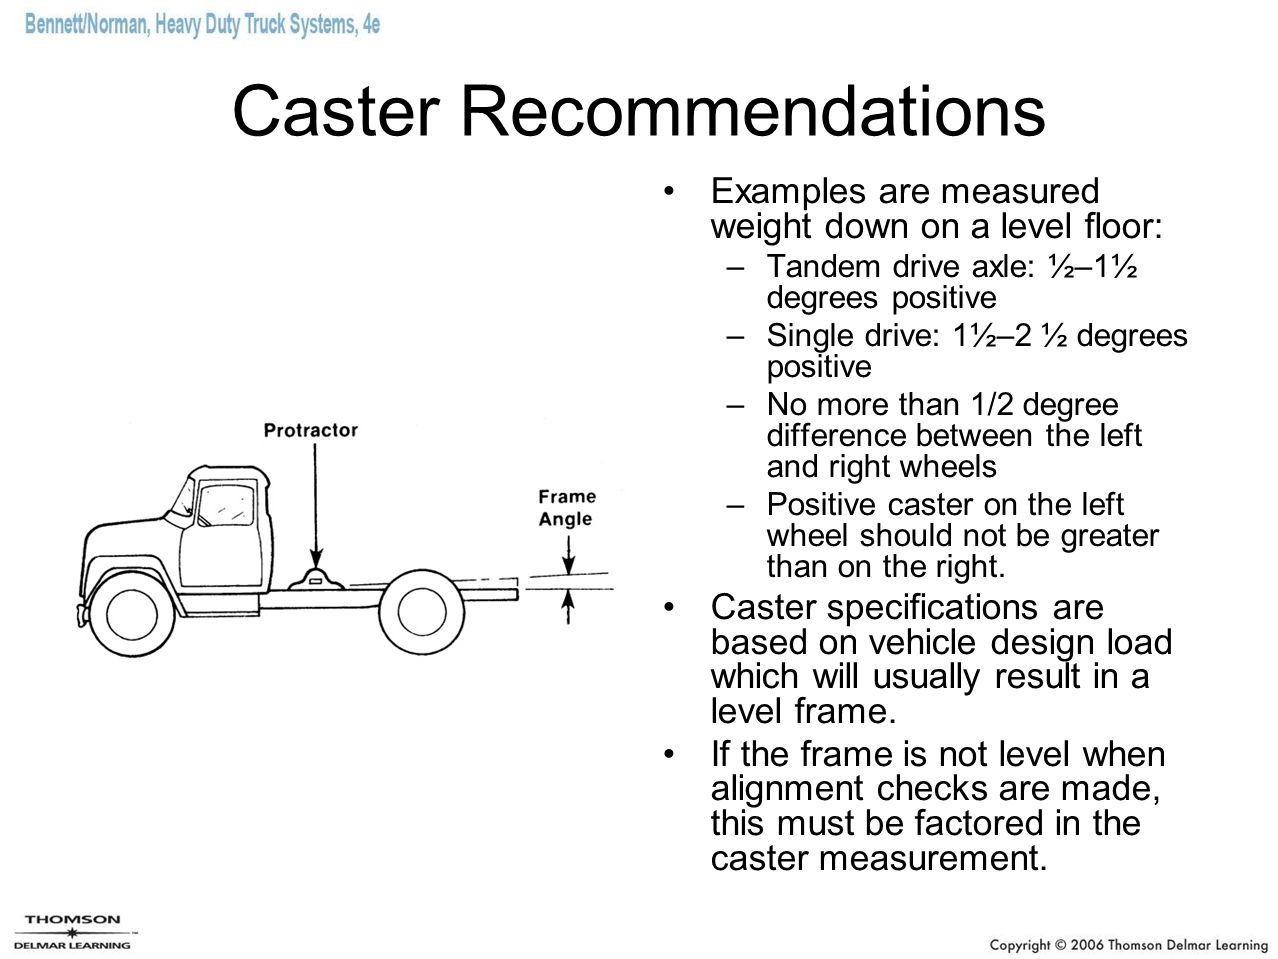 Caster Recommendations